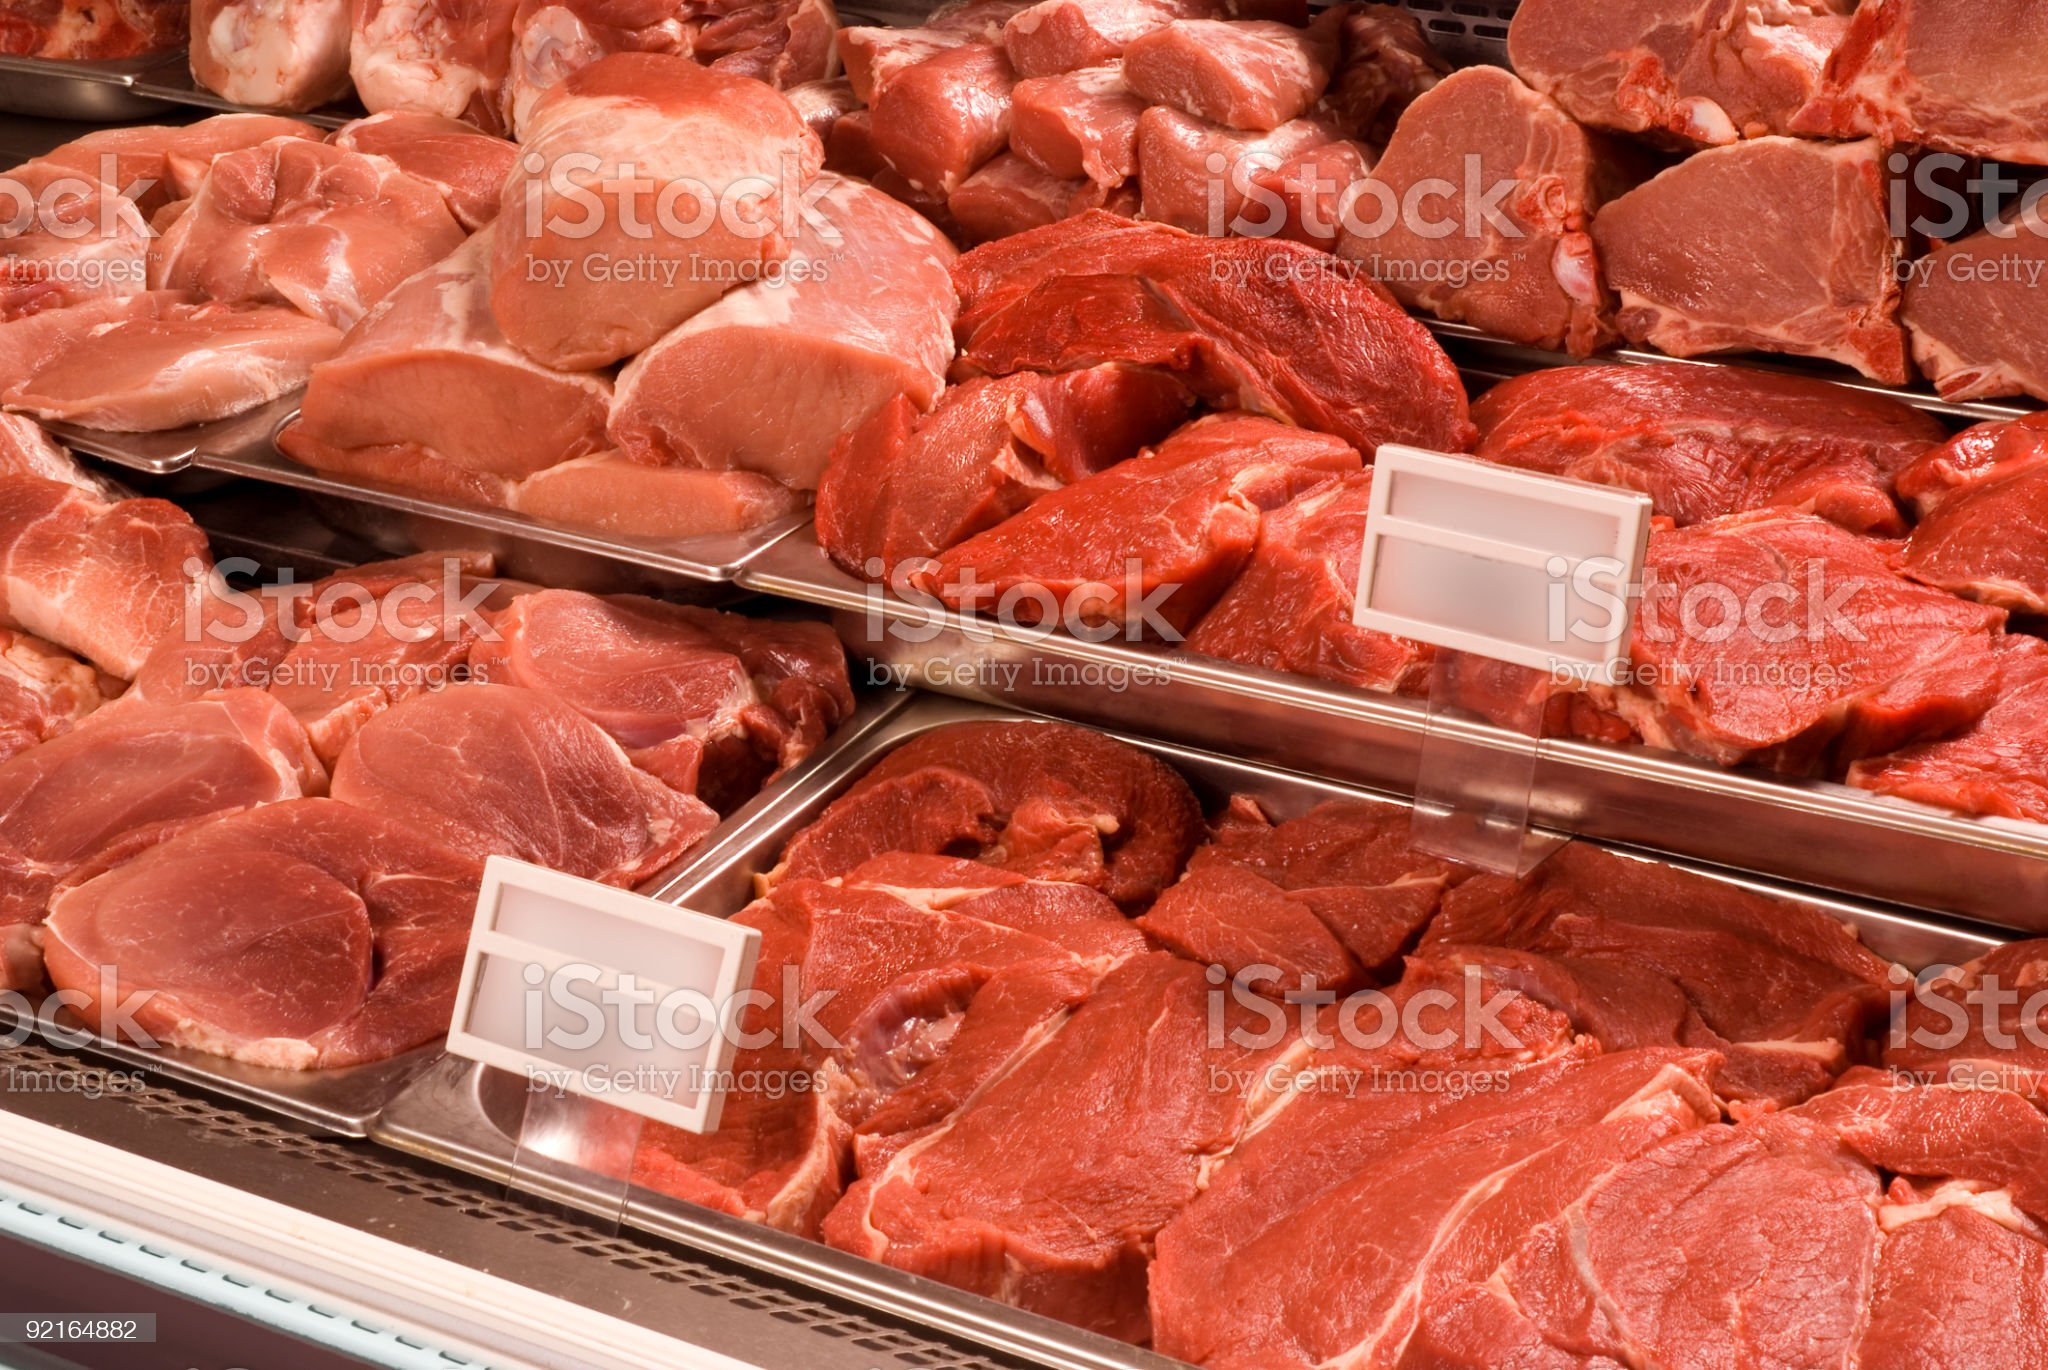 Assortment of meat at a butcher shop royalty-free stock photo